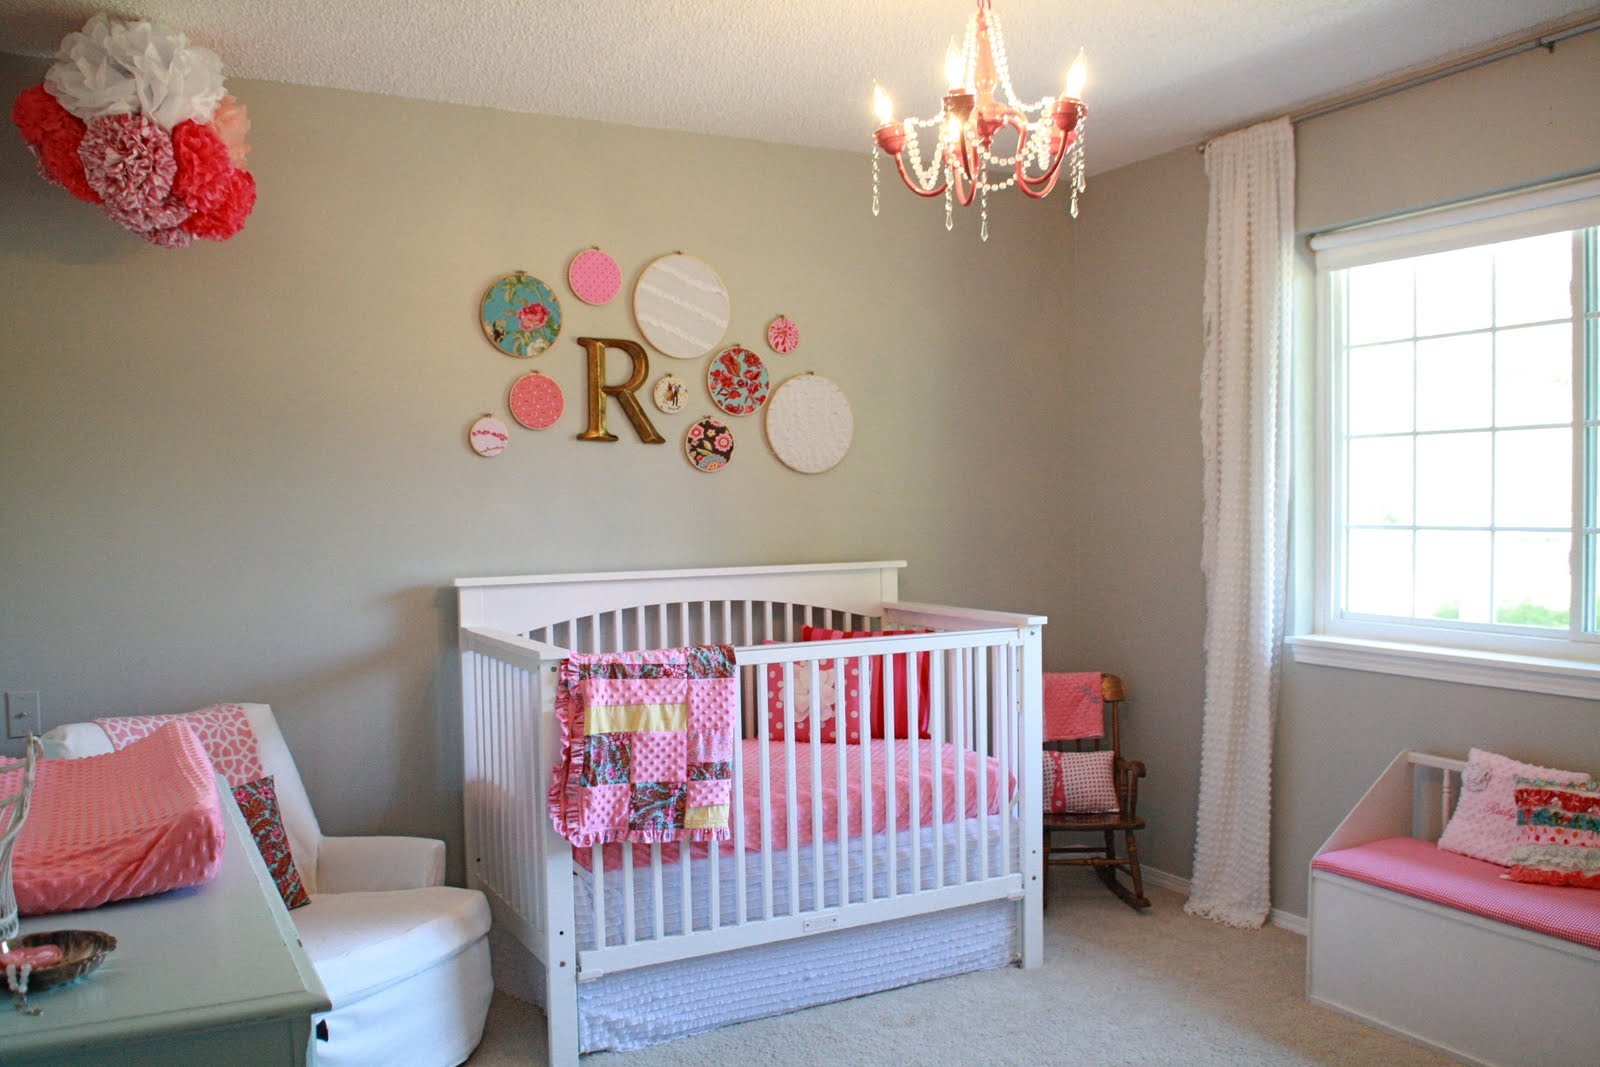 Magnificent Wall Decor also Crib Near Arm Chair To Decorate Girl Nursery Themes